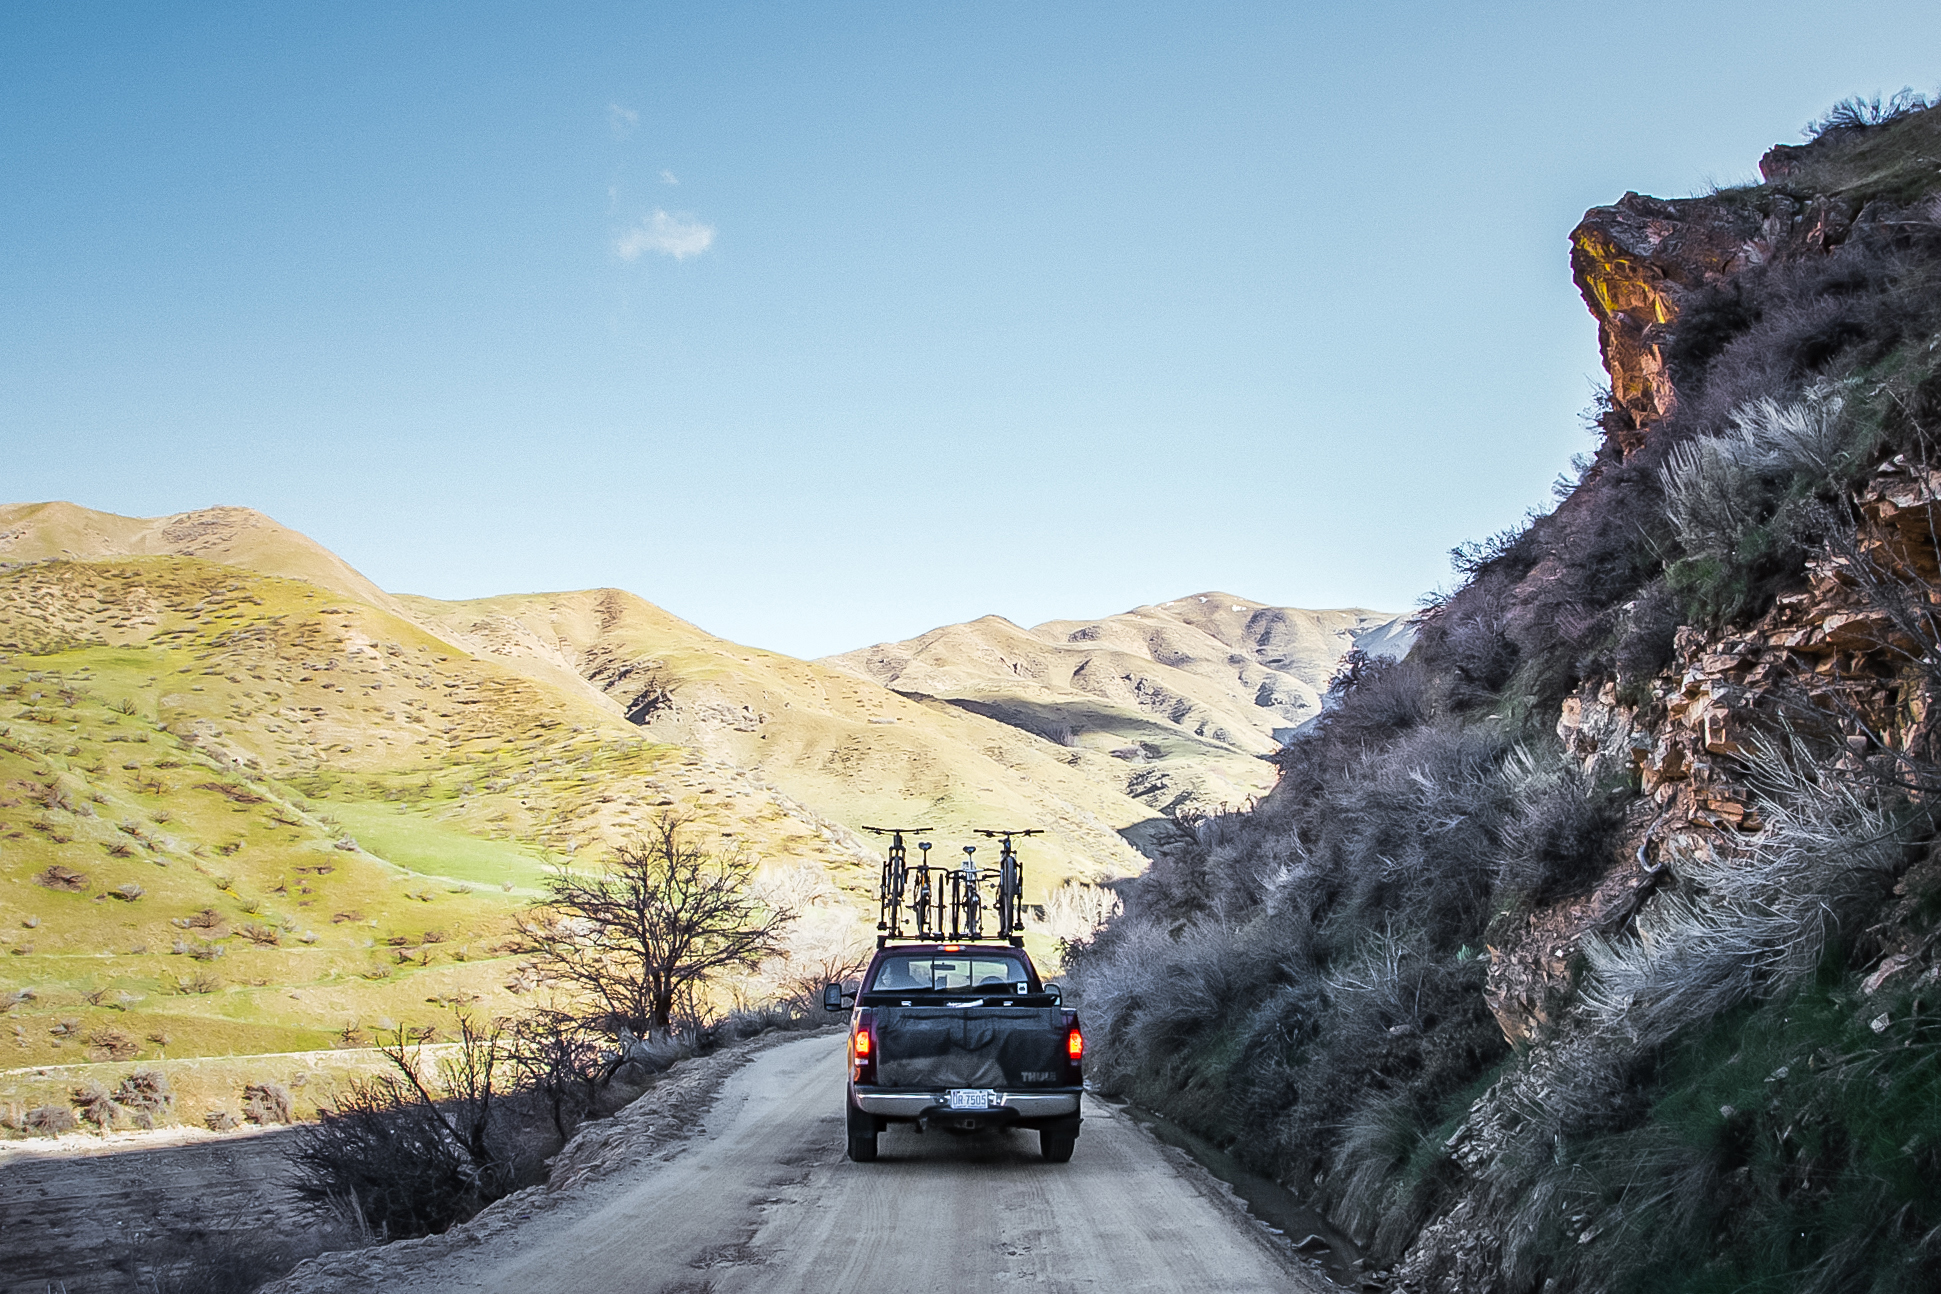 Truck with bikes on roof driving down gravel wall next to rock wall.